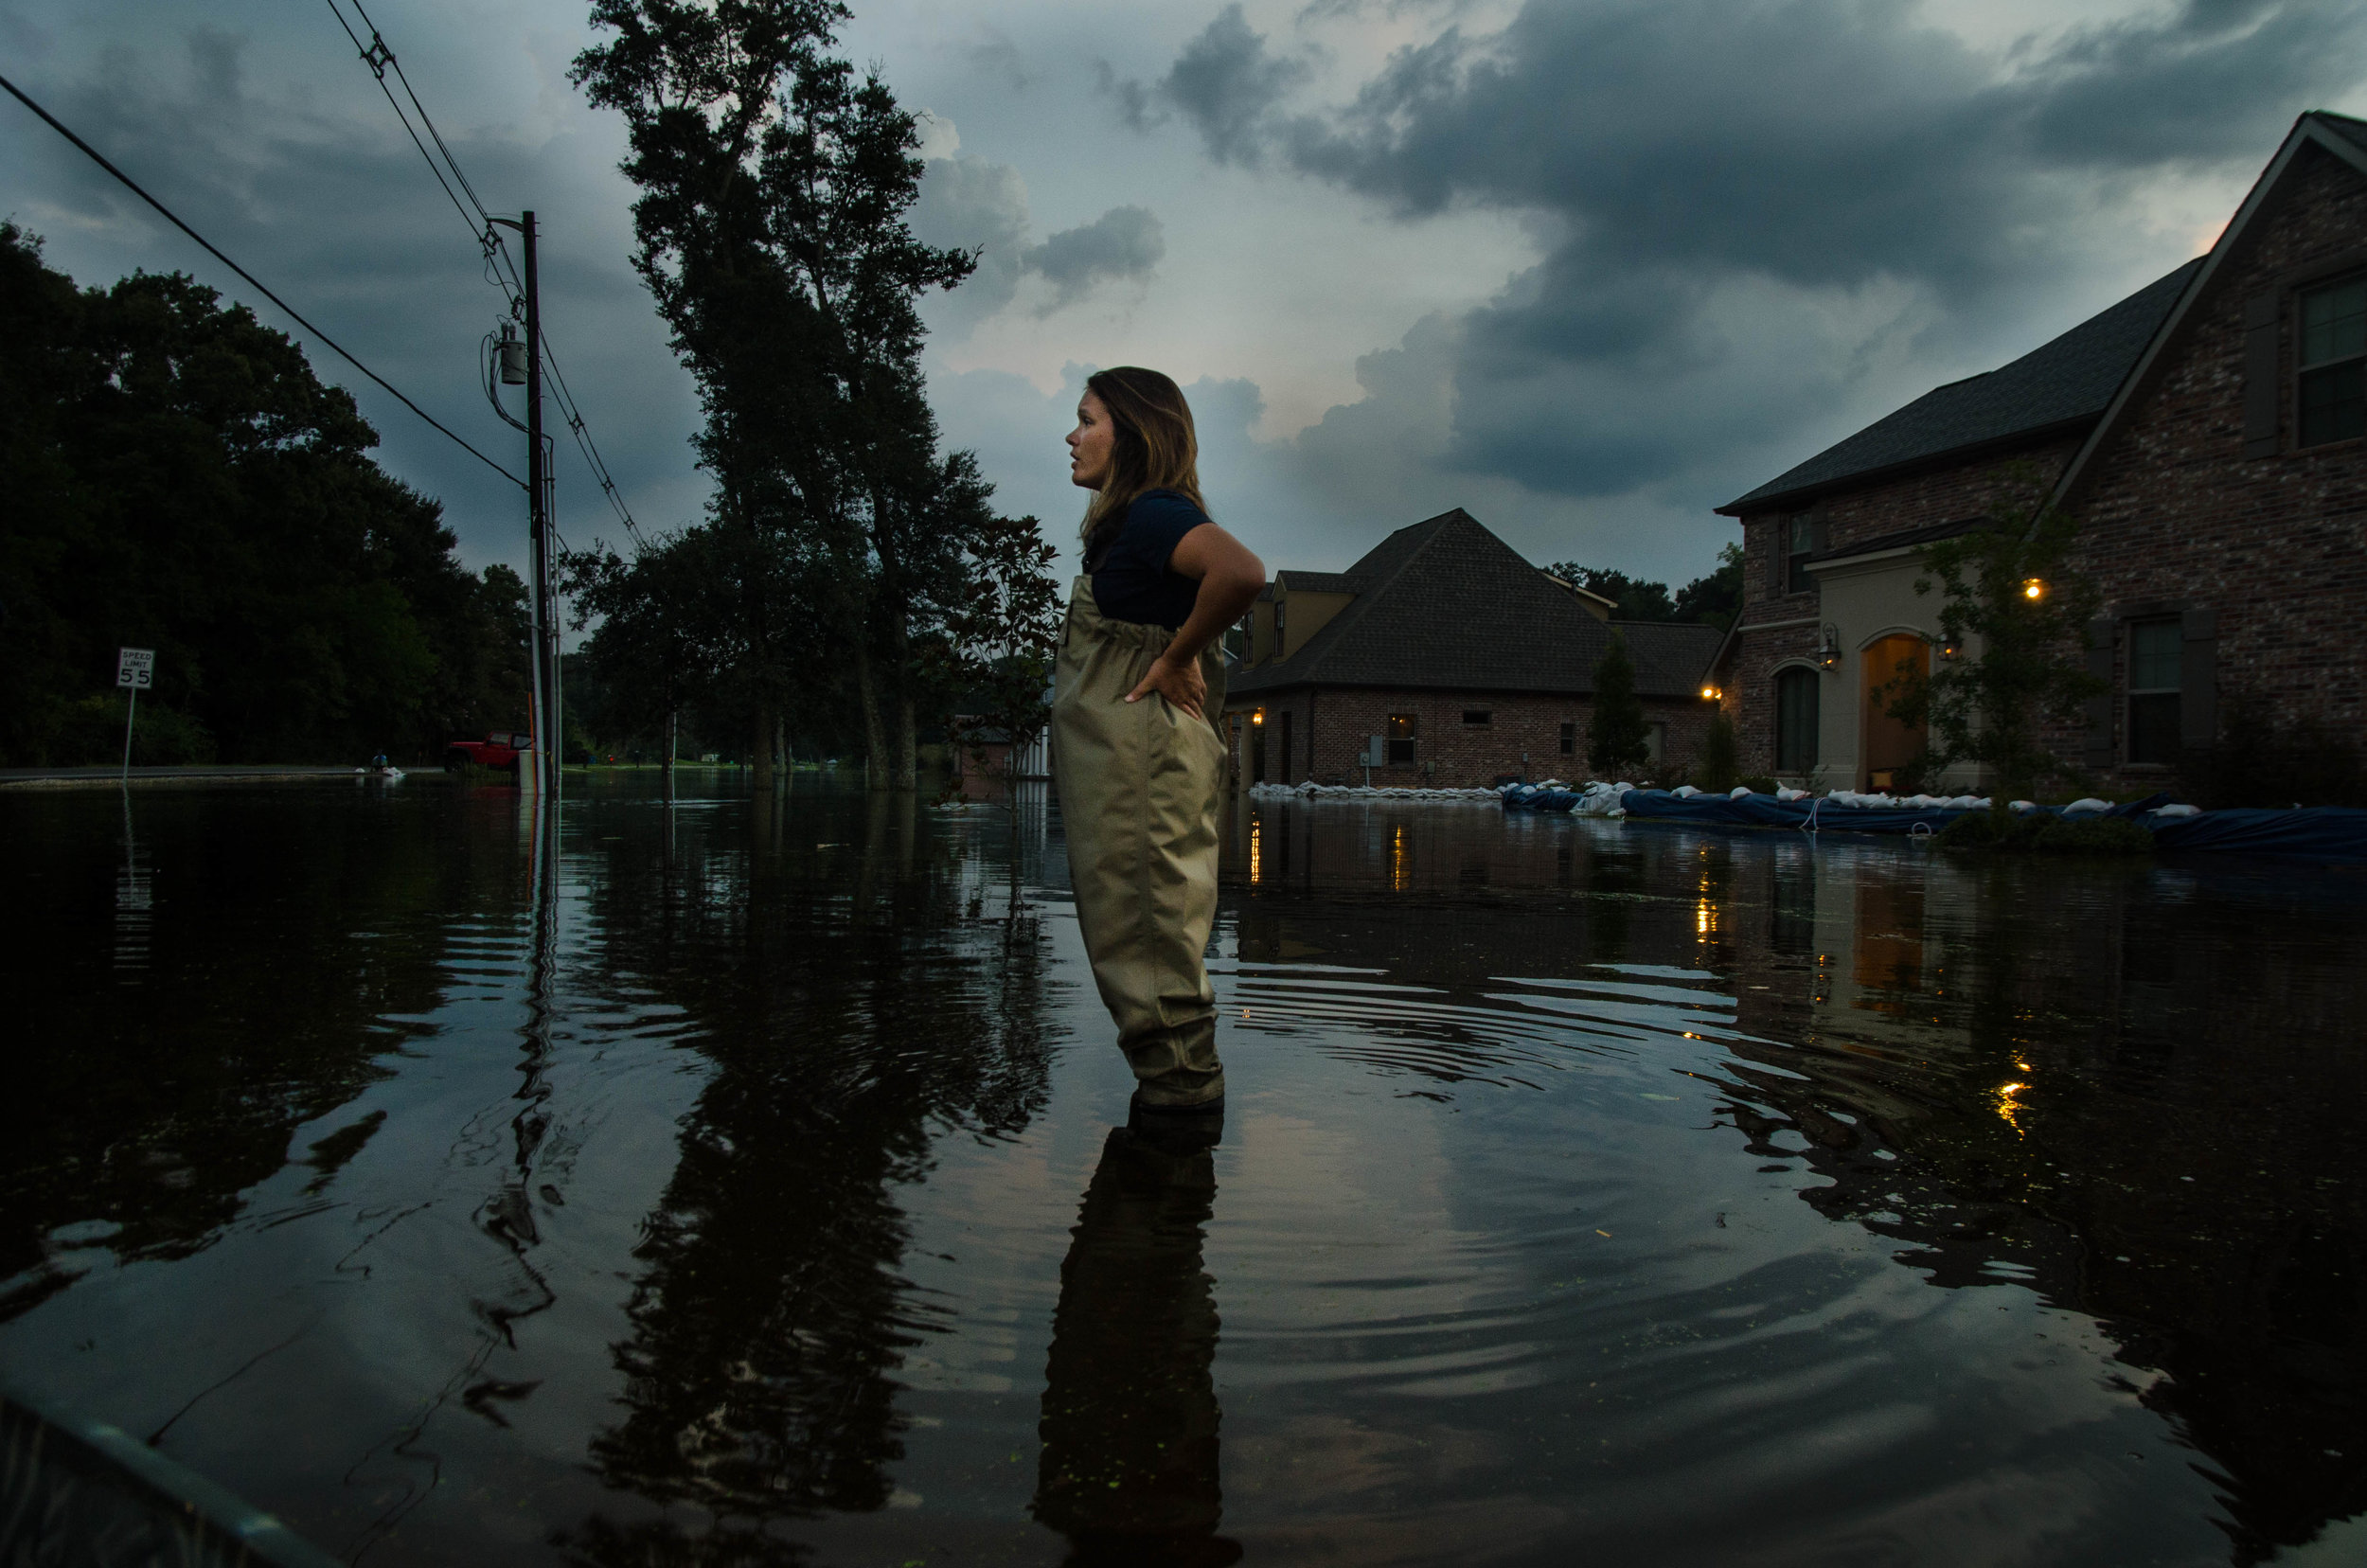 Glenda Mora, a homeowner on Bluff Rd in Baton Rouge, Louisiana, looks out over the neighborhood.